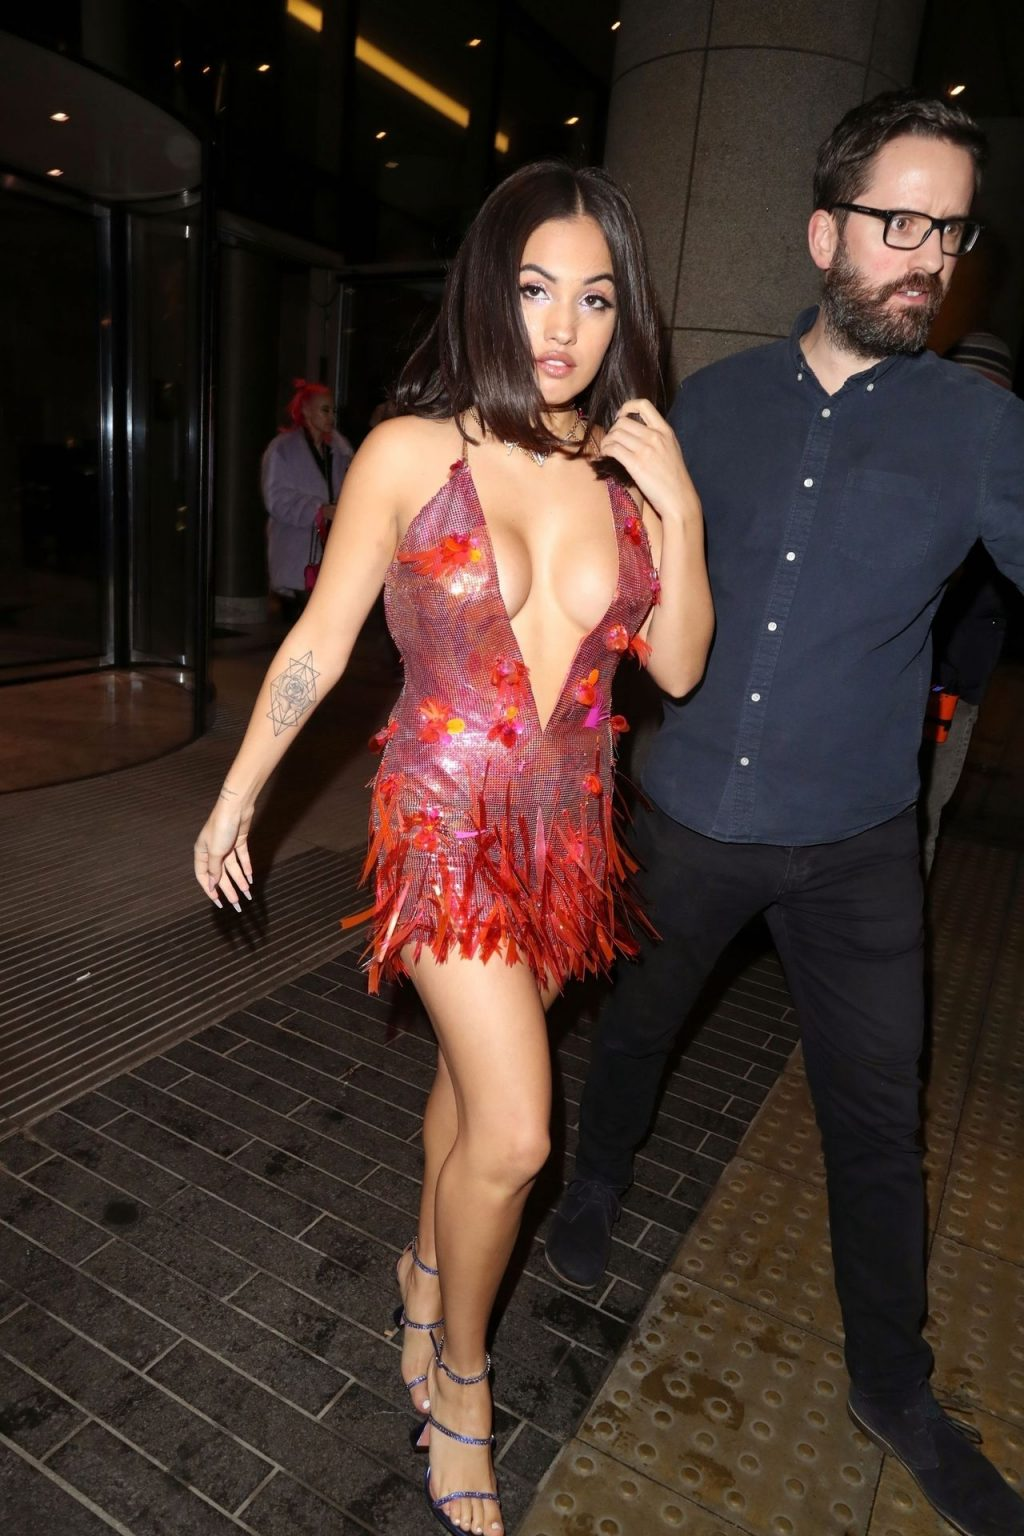 Mabel is Sexy in a Red Dress as She Attends the Brit Awards Afterparty (19 Photos)